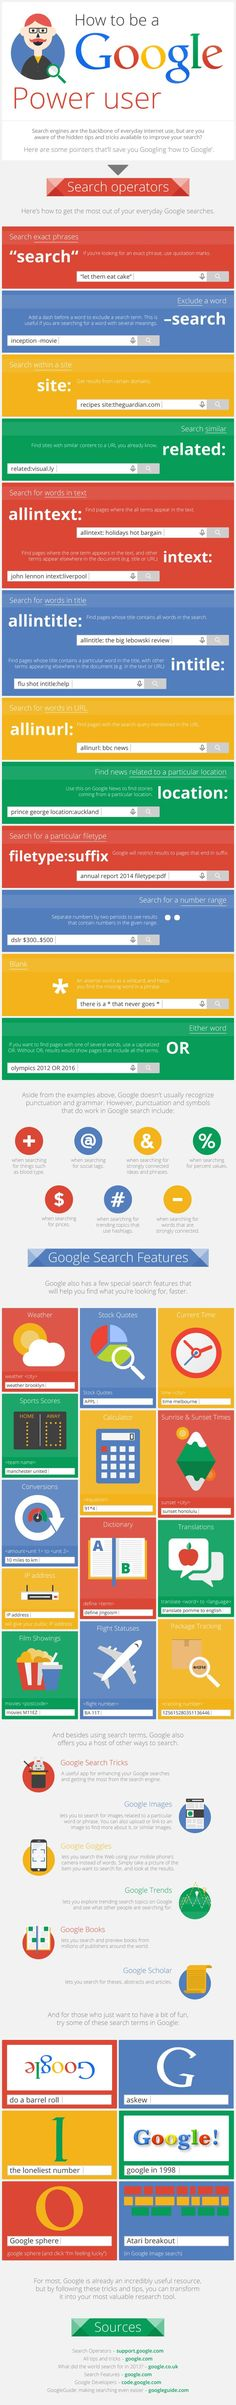 How to be a #Google Power User #infographic